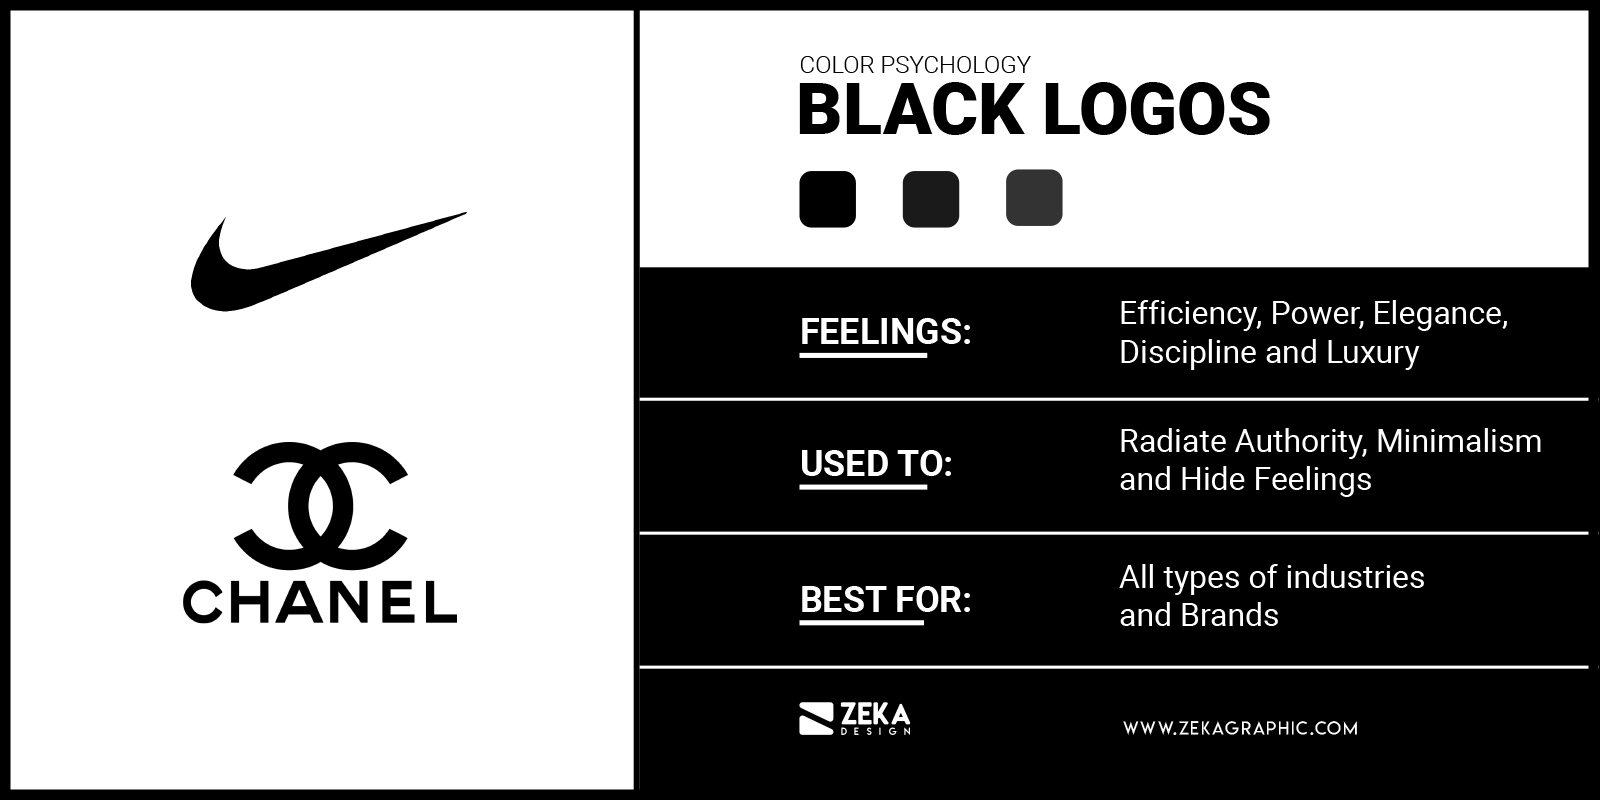 Black Logos Meaning in Graphic Design